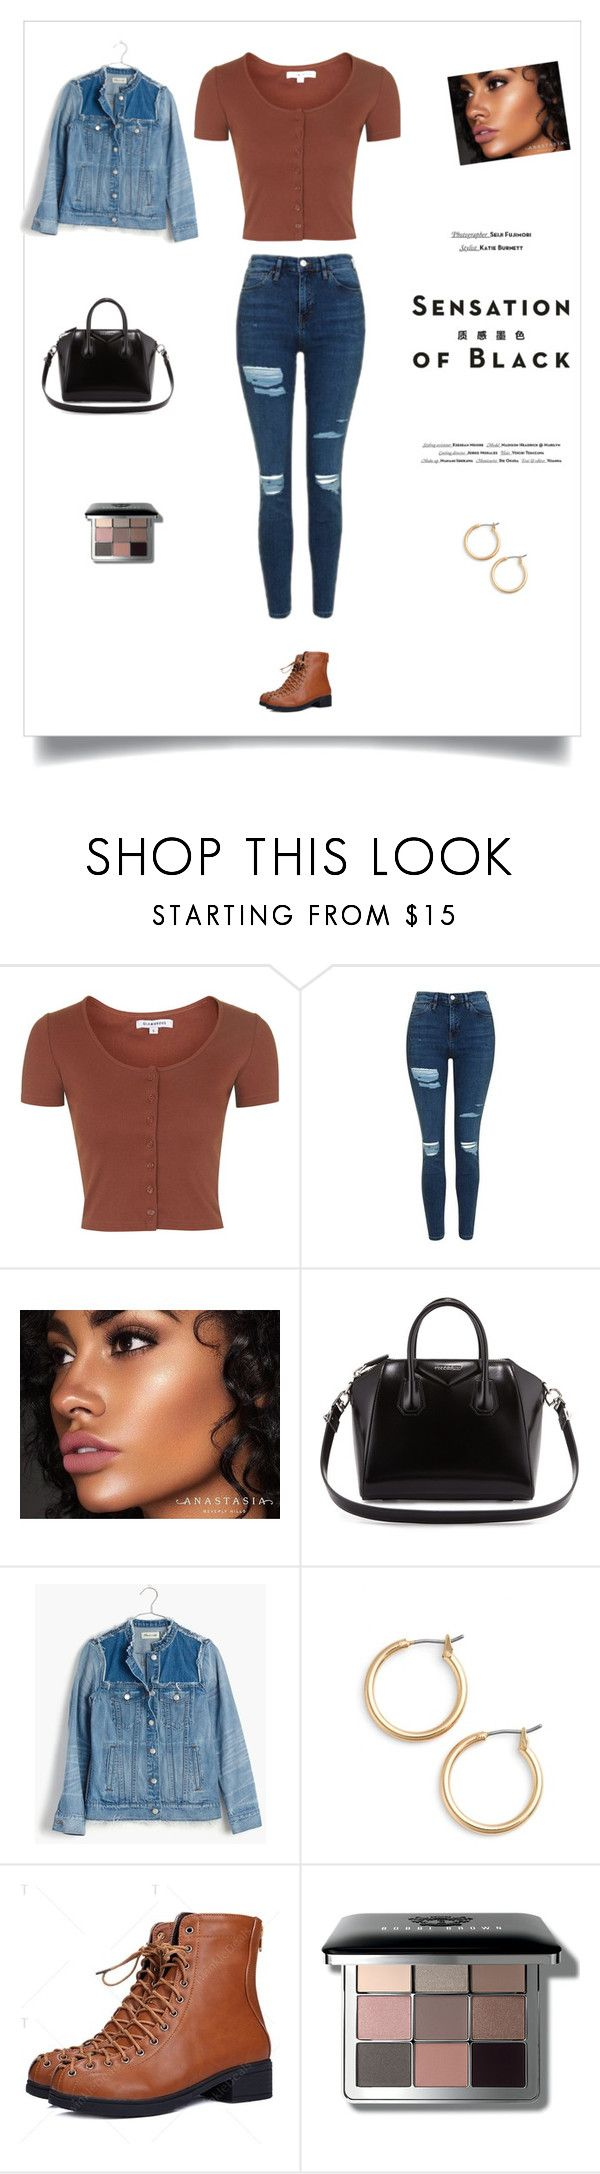 """""""Send me your location"""" by simplicitx ❤ liked on Polyvore featuring Vision, Topshop, Anastasia Beverly Hills, Givenchy, Madewell, Nordstrom and Bobbi Brown Cosmetics"""